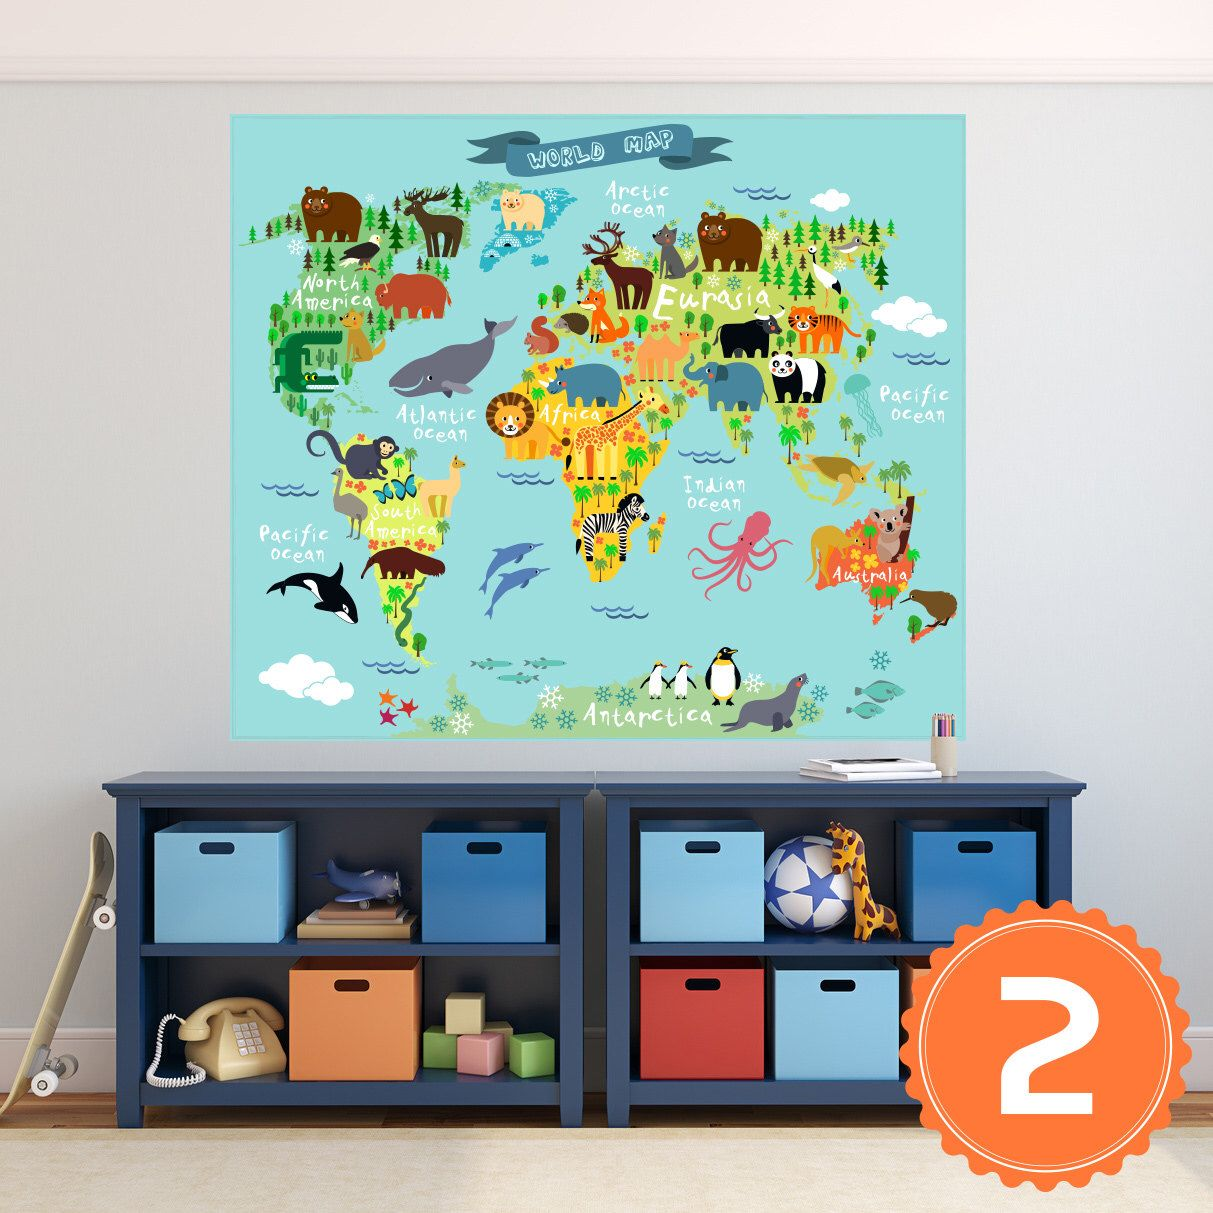 World map poster decal mural sticker wall vinyl or fabric animals world map poster decal mural sticker wall vinyl or fabric animals world map peel and stick gumiabroncs Gallery